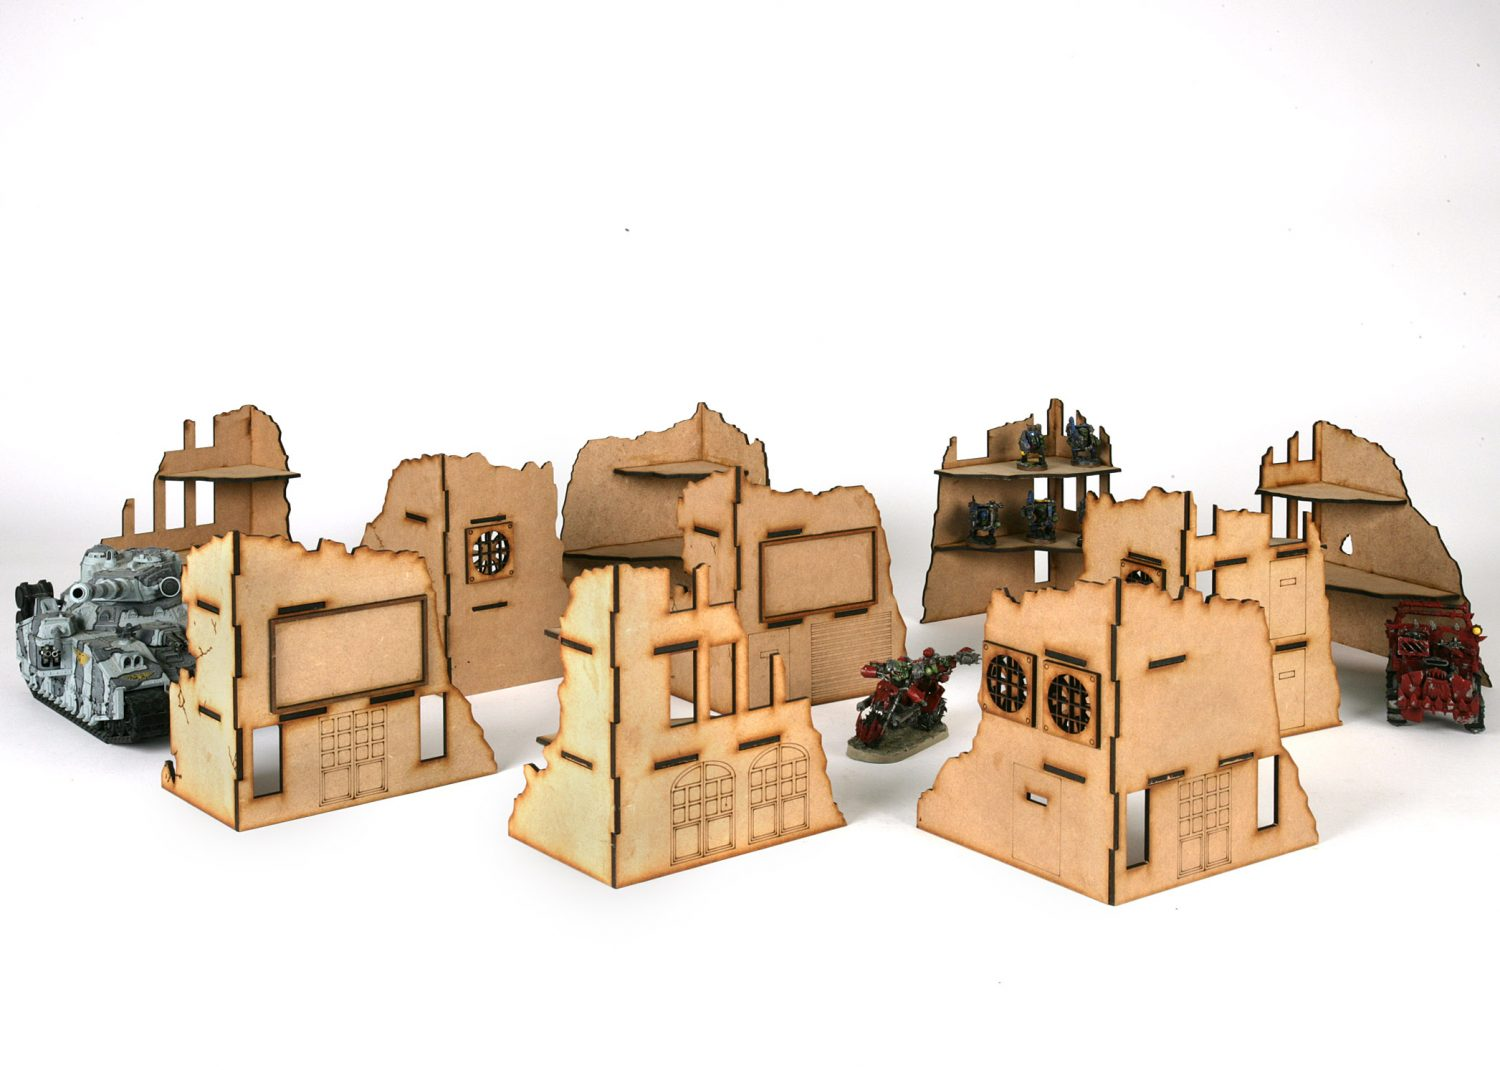 Terrain | Product categories | Wargames Tournaments